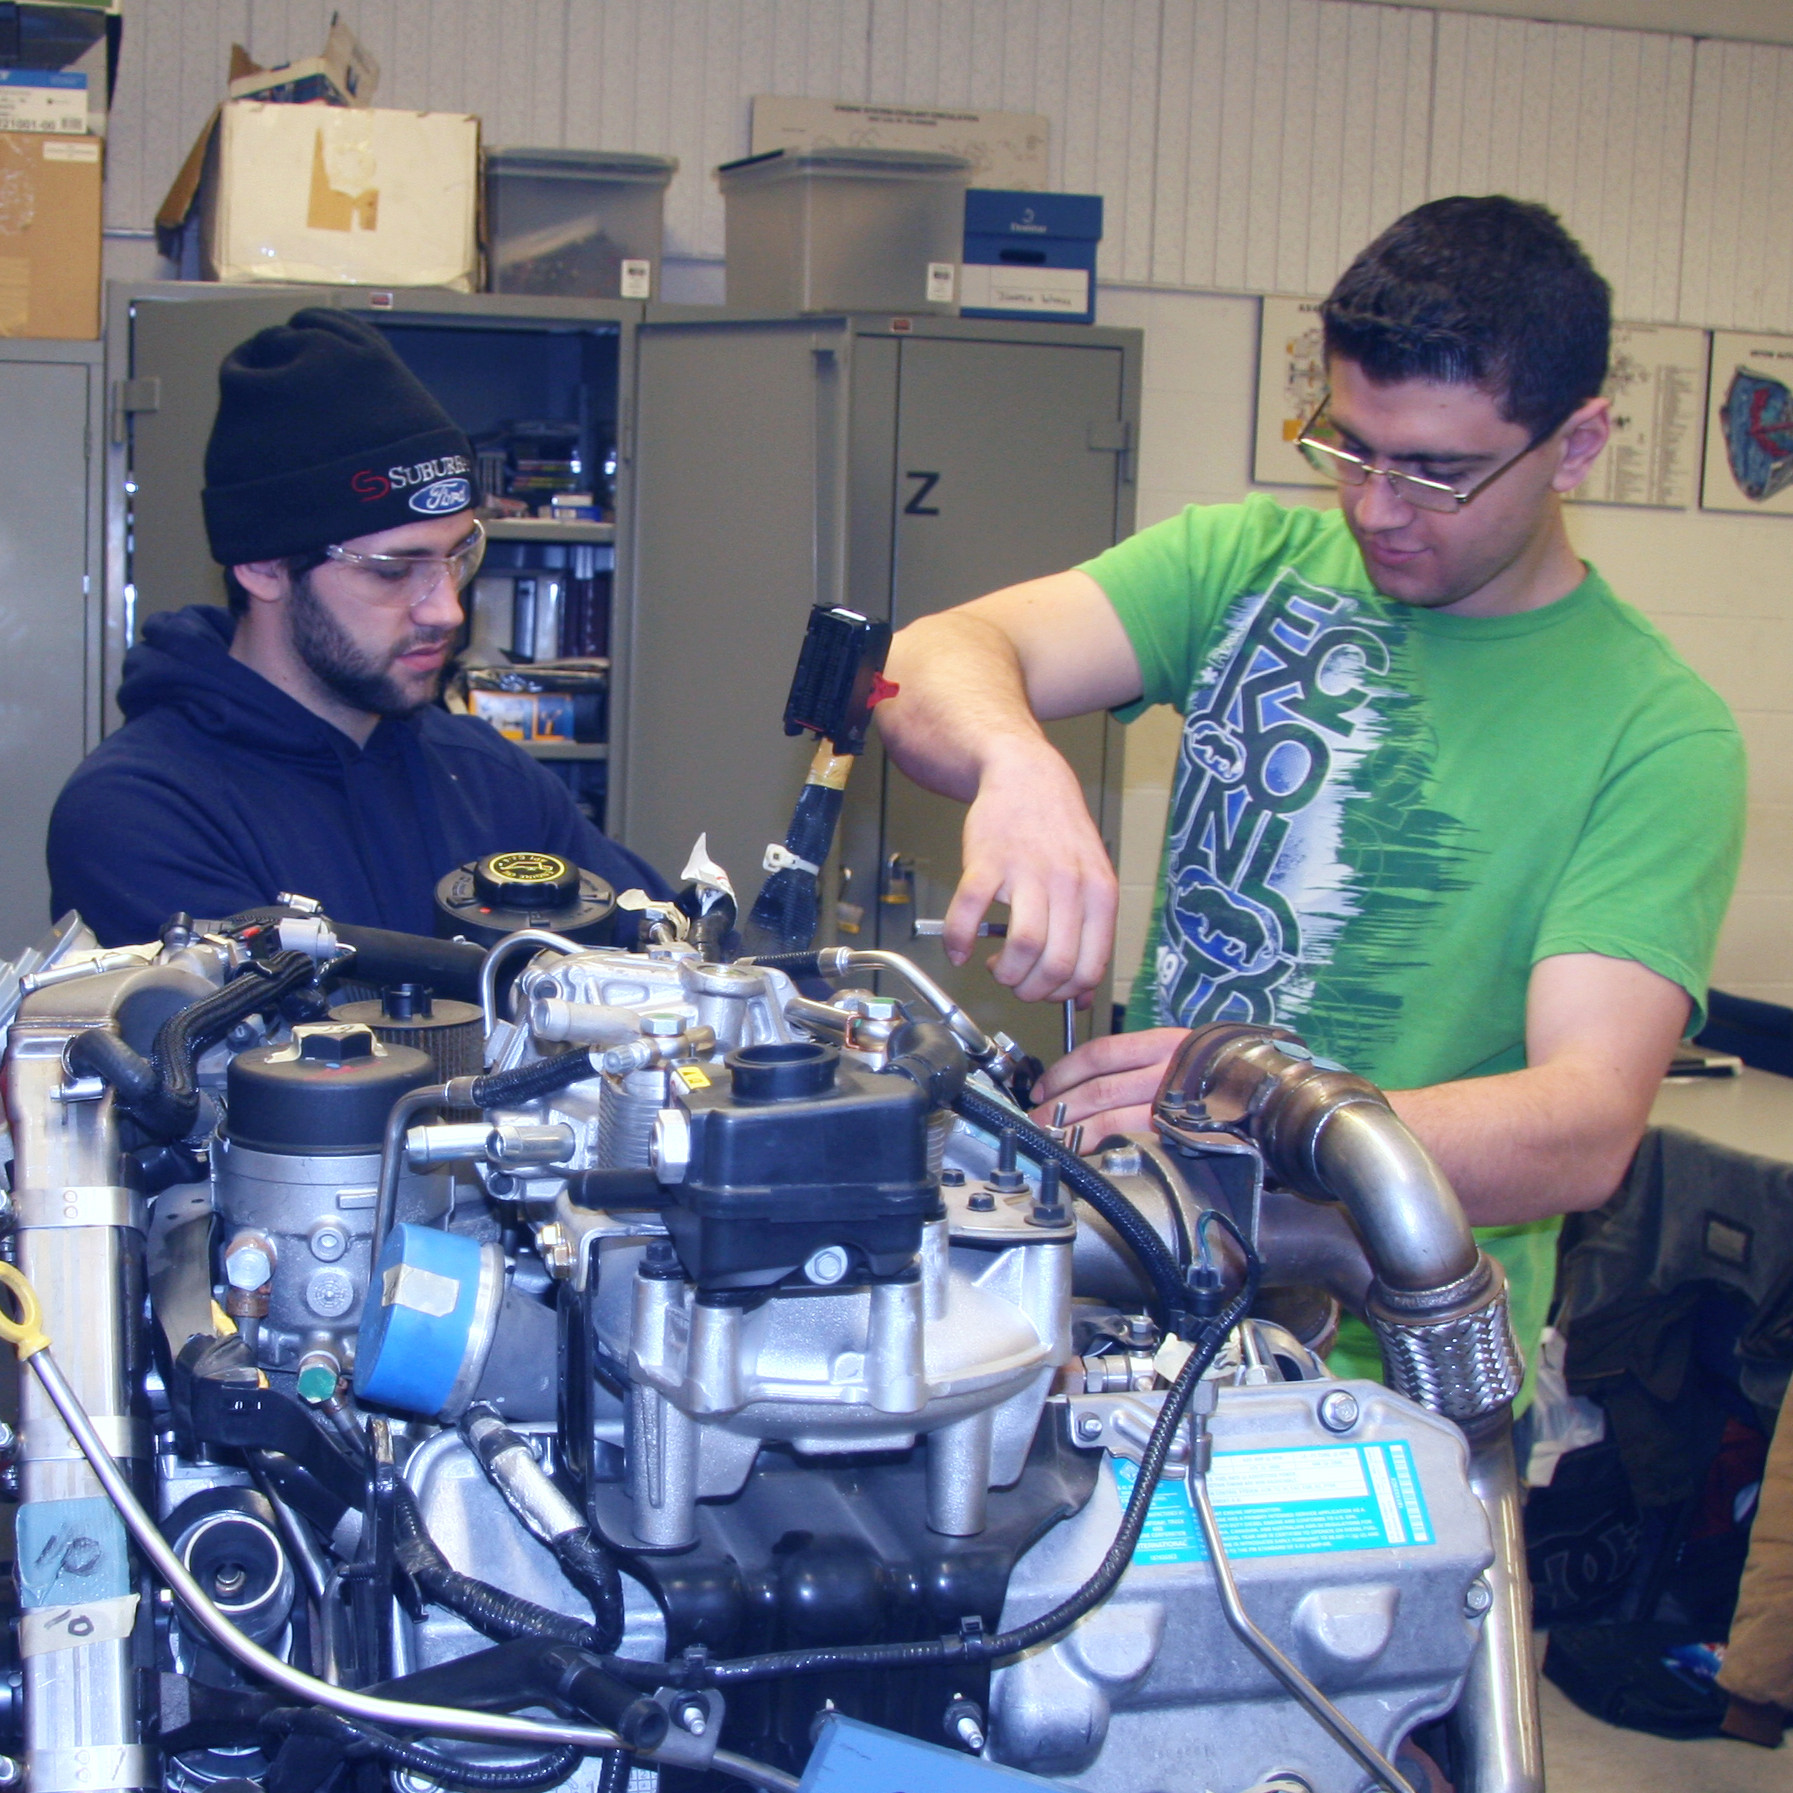 Two students working on large automotive engine